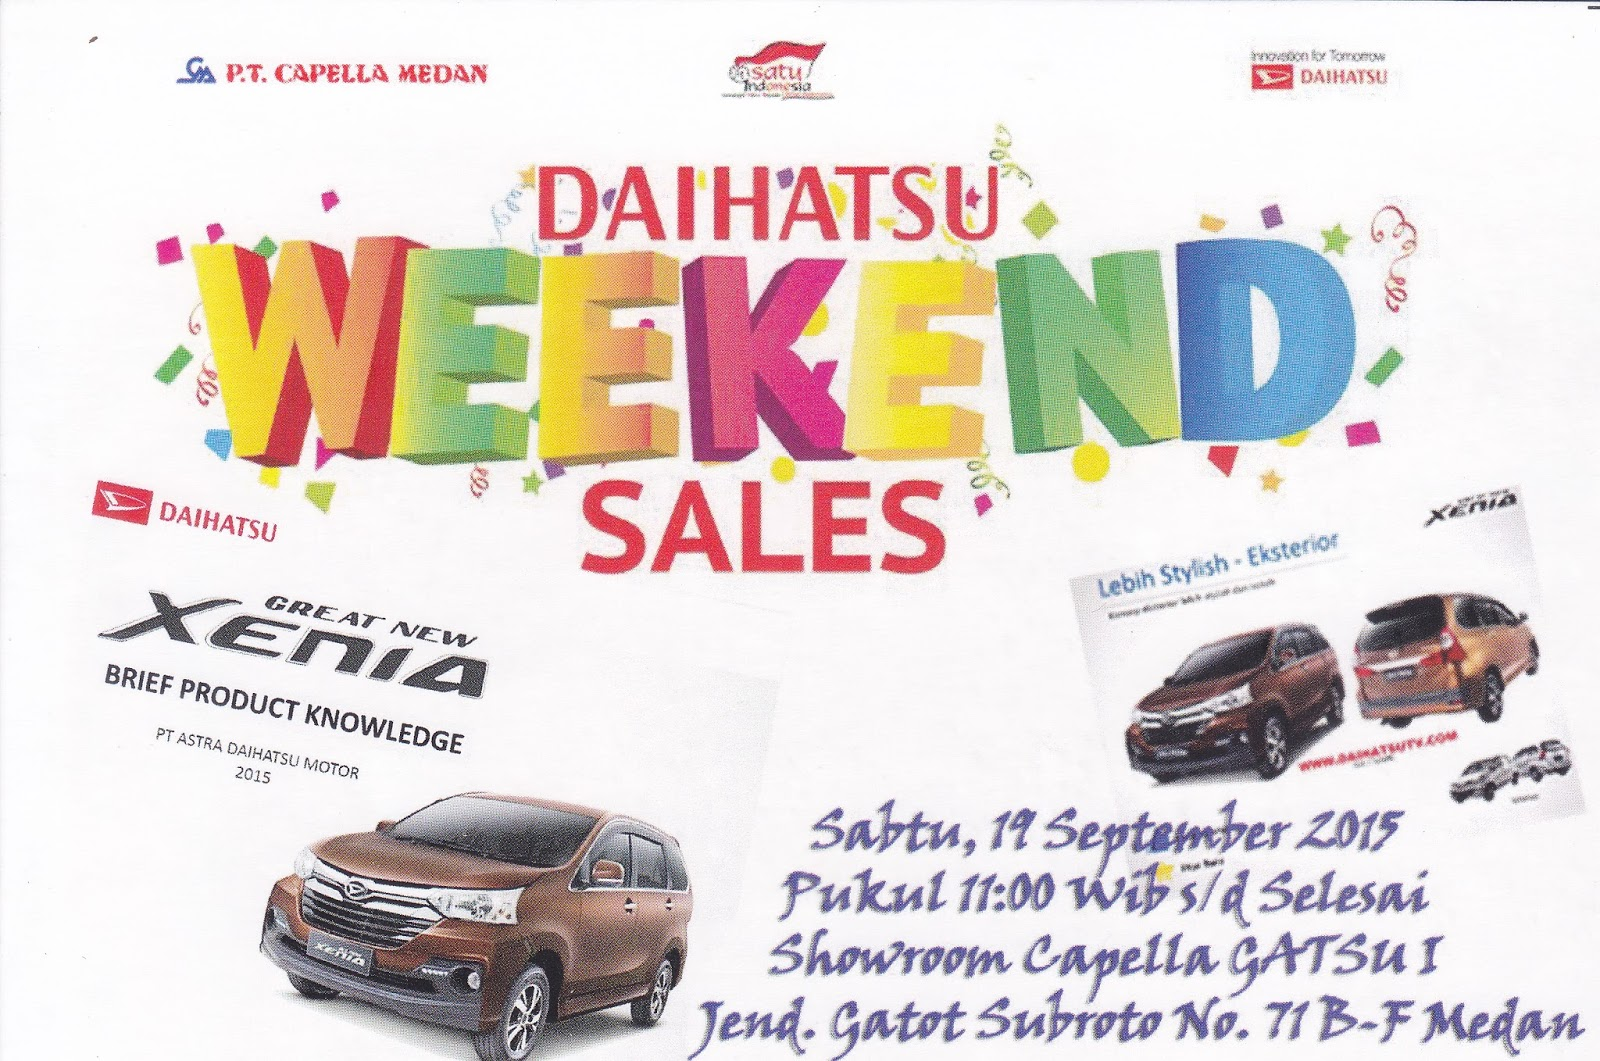 Daihatsu Weekend Sales Medan